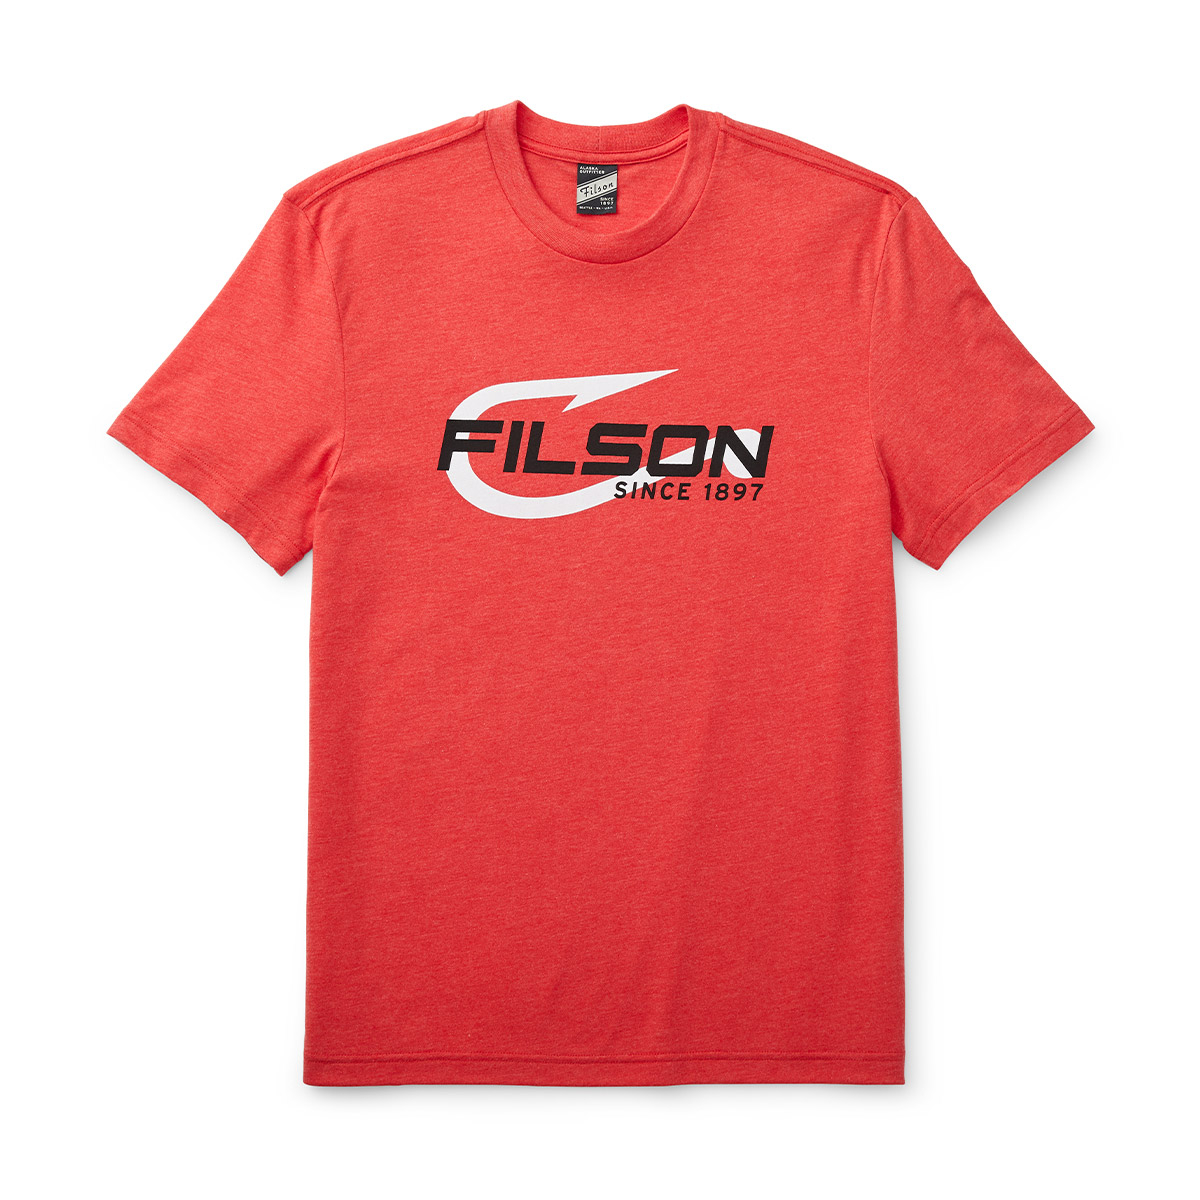 Filson Buckshot T-Shirt Mackinaw Red, high performance T-shirt with UPF 50+ sun protection